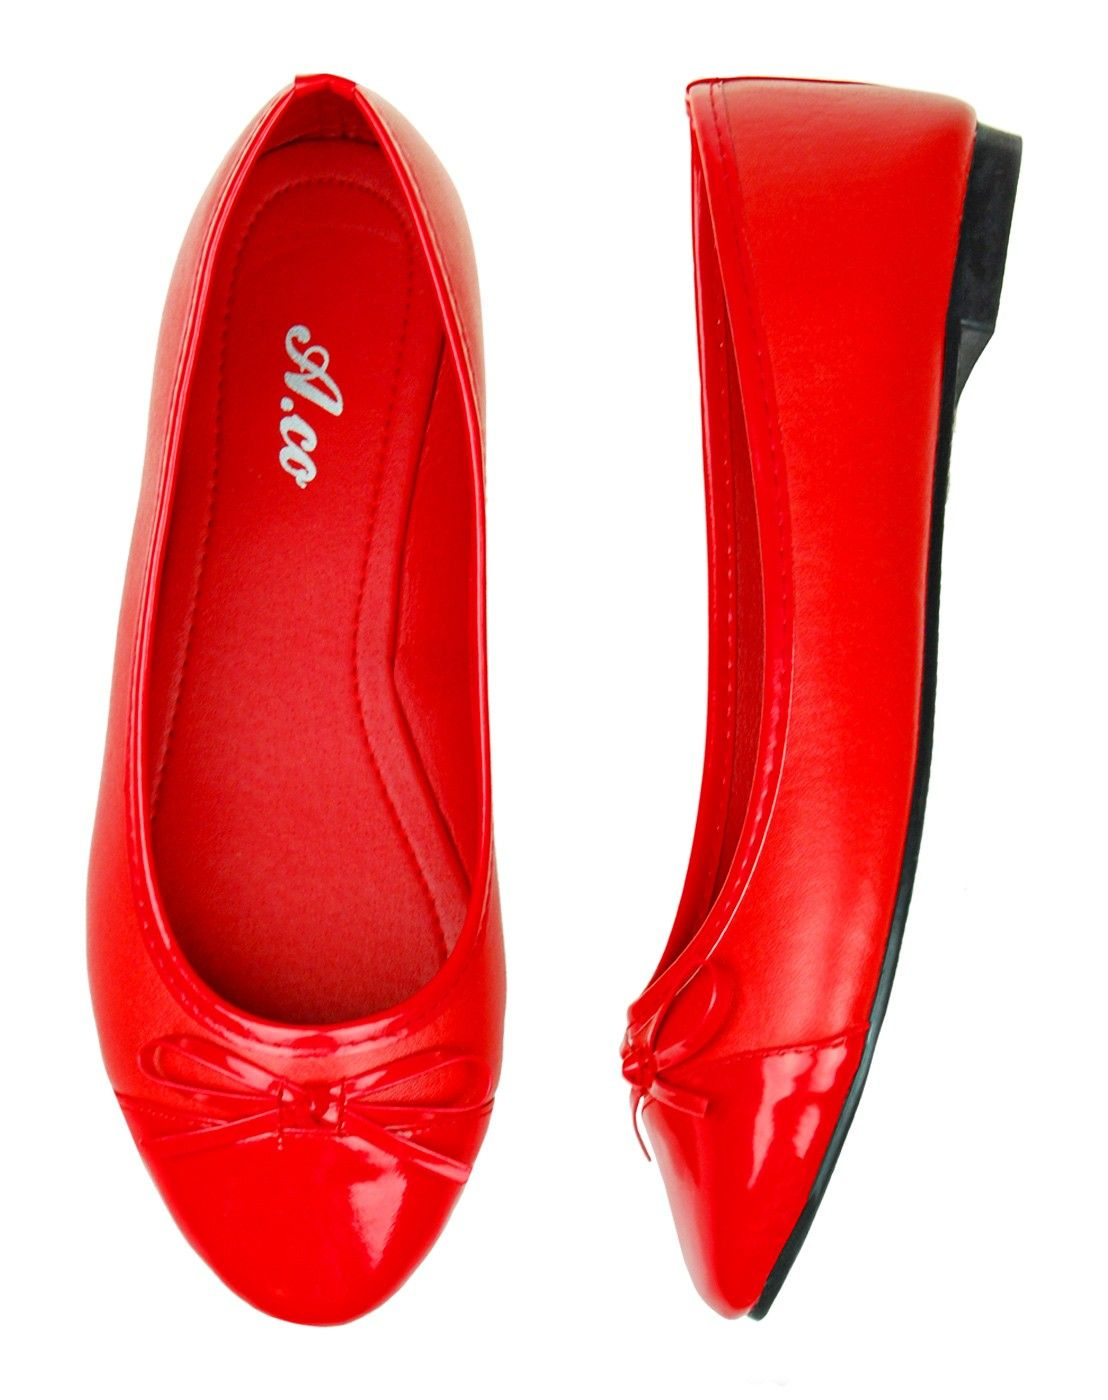 These red ballerina flats go with any outfit, from casual to formal!